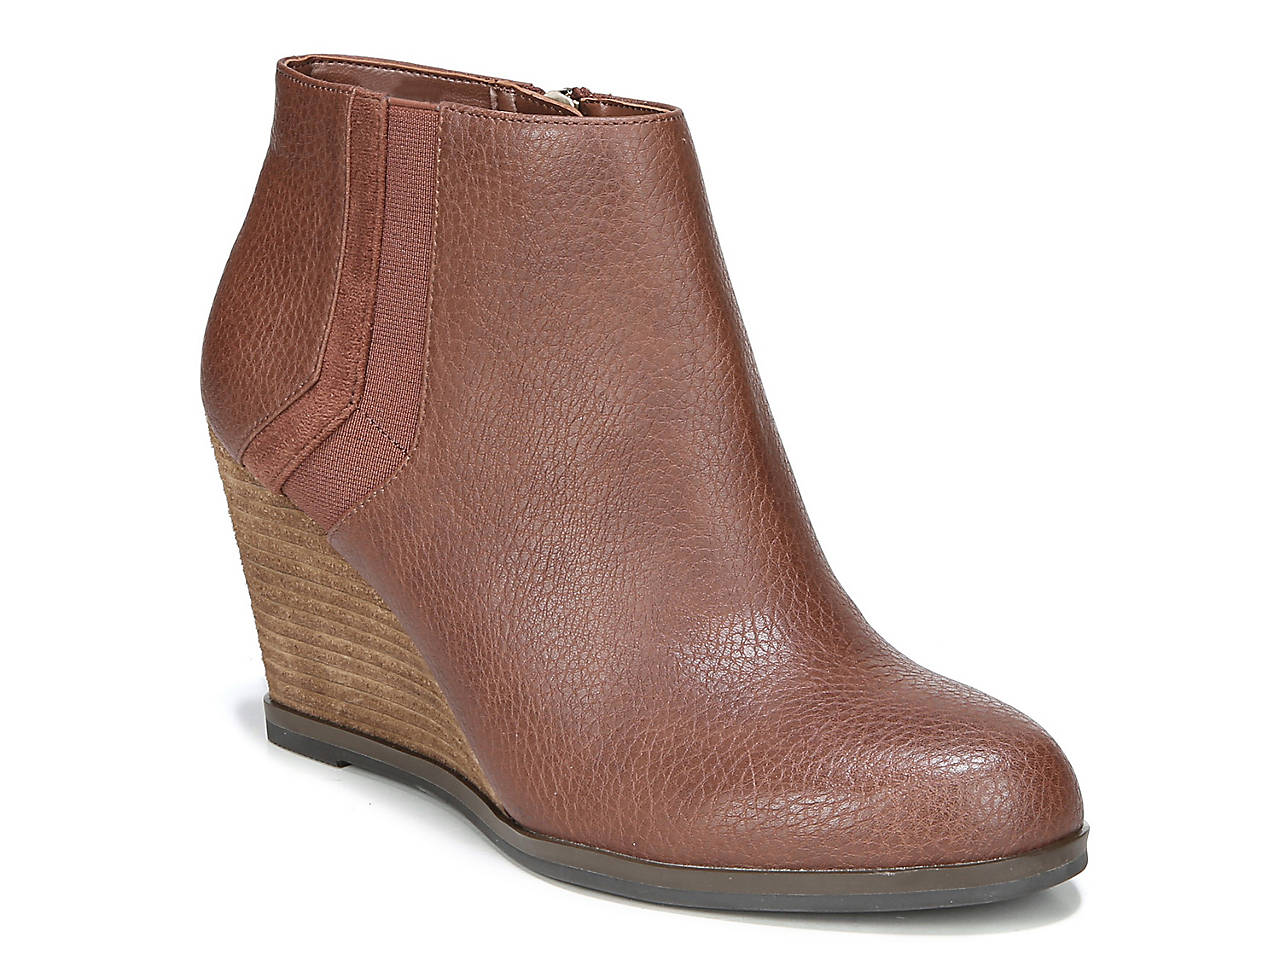 08806410b7f Dr. Scholl s Patch Wedge Bootie Women s Shoes